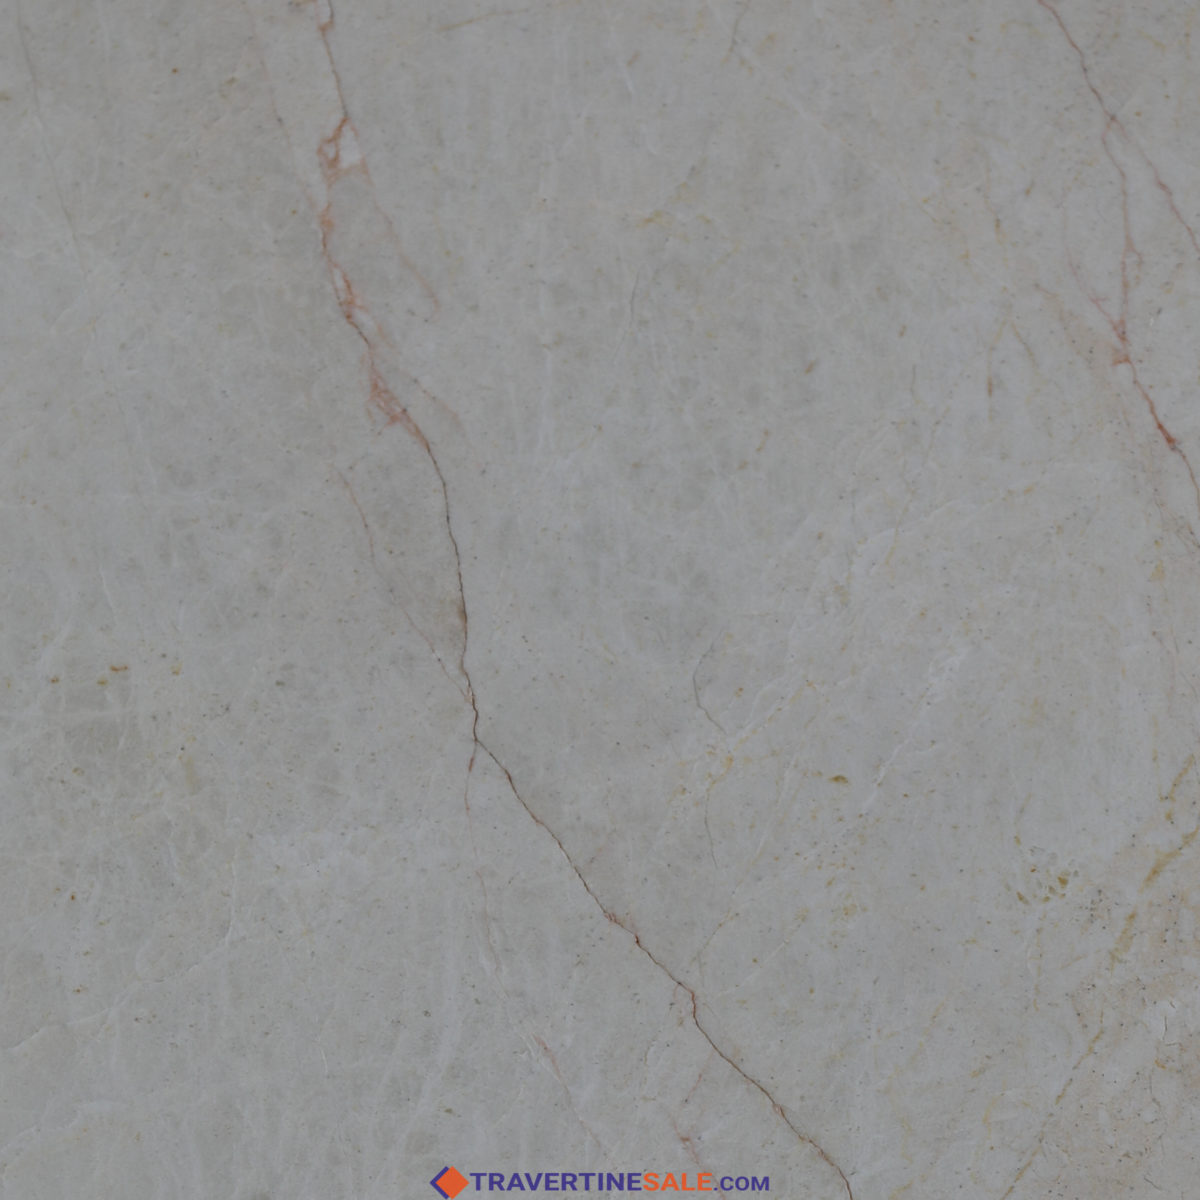 polished vanilla marble tile surface with beige background and red veins